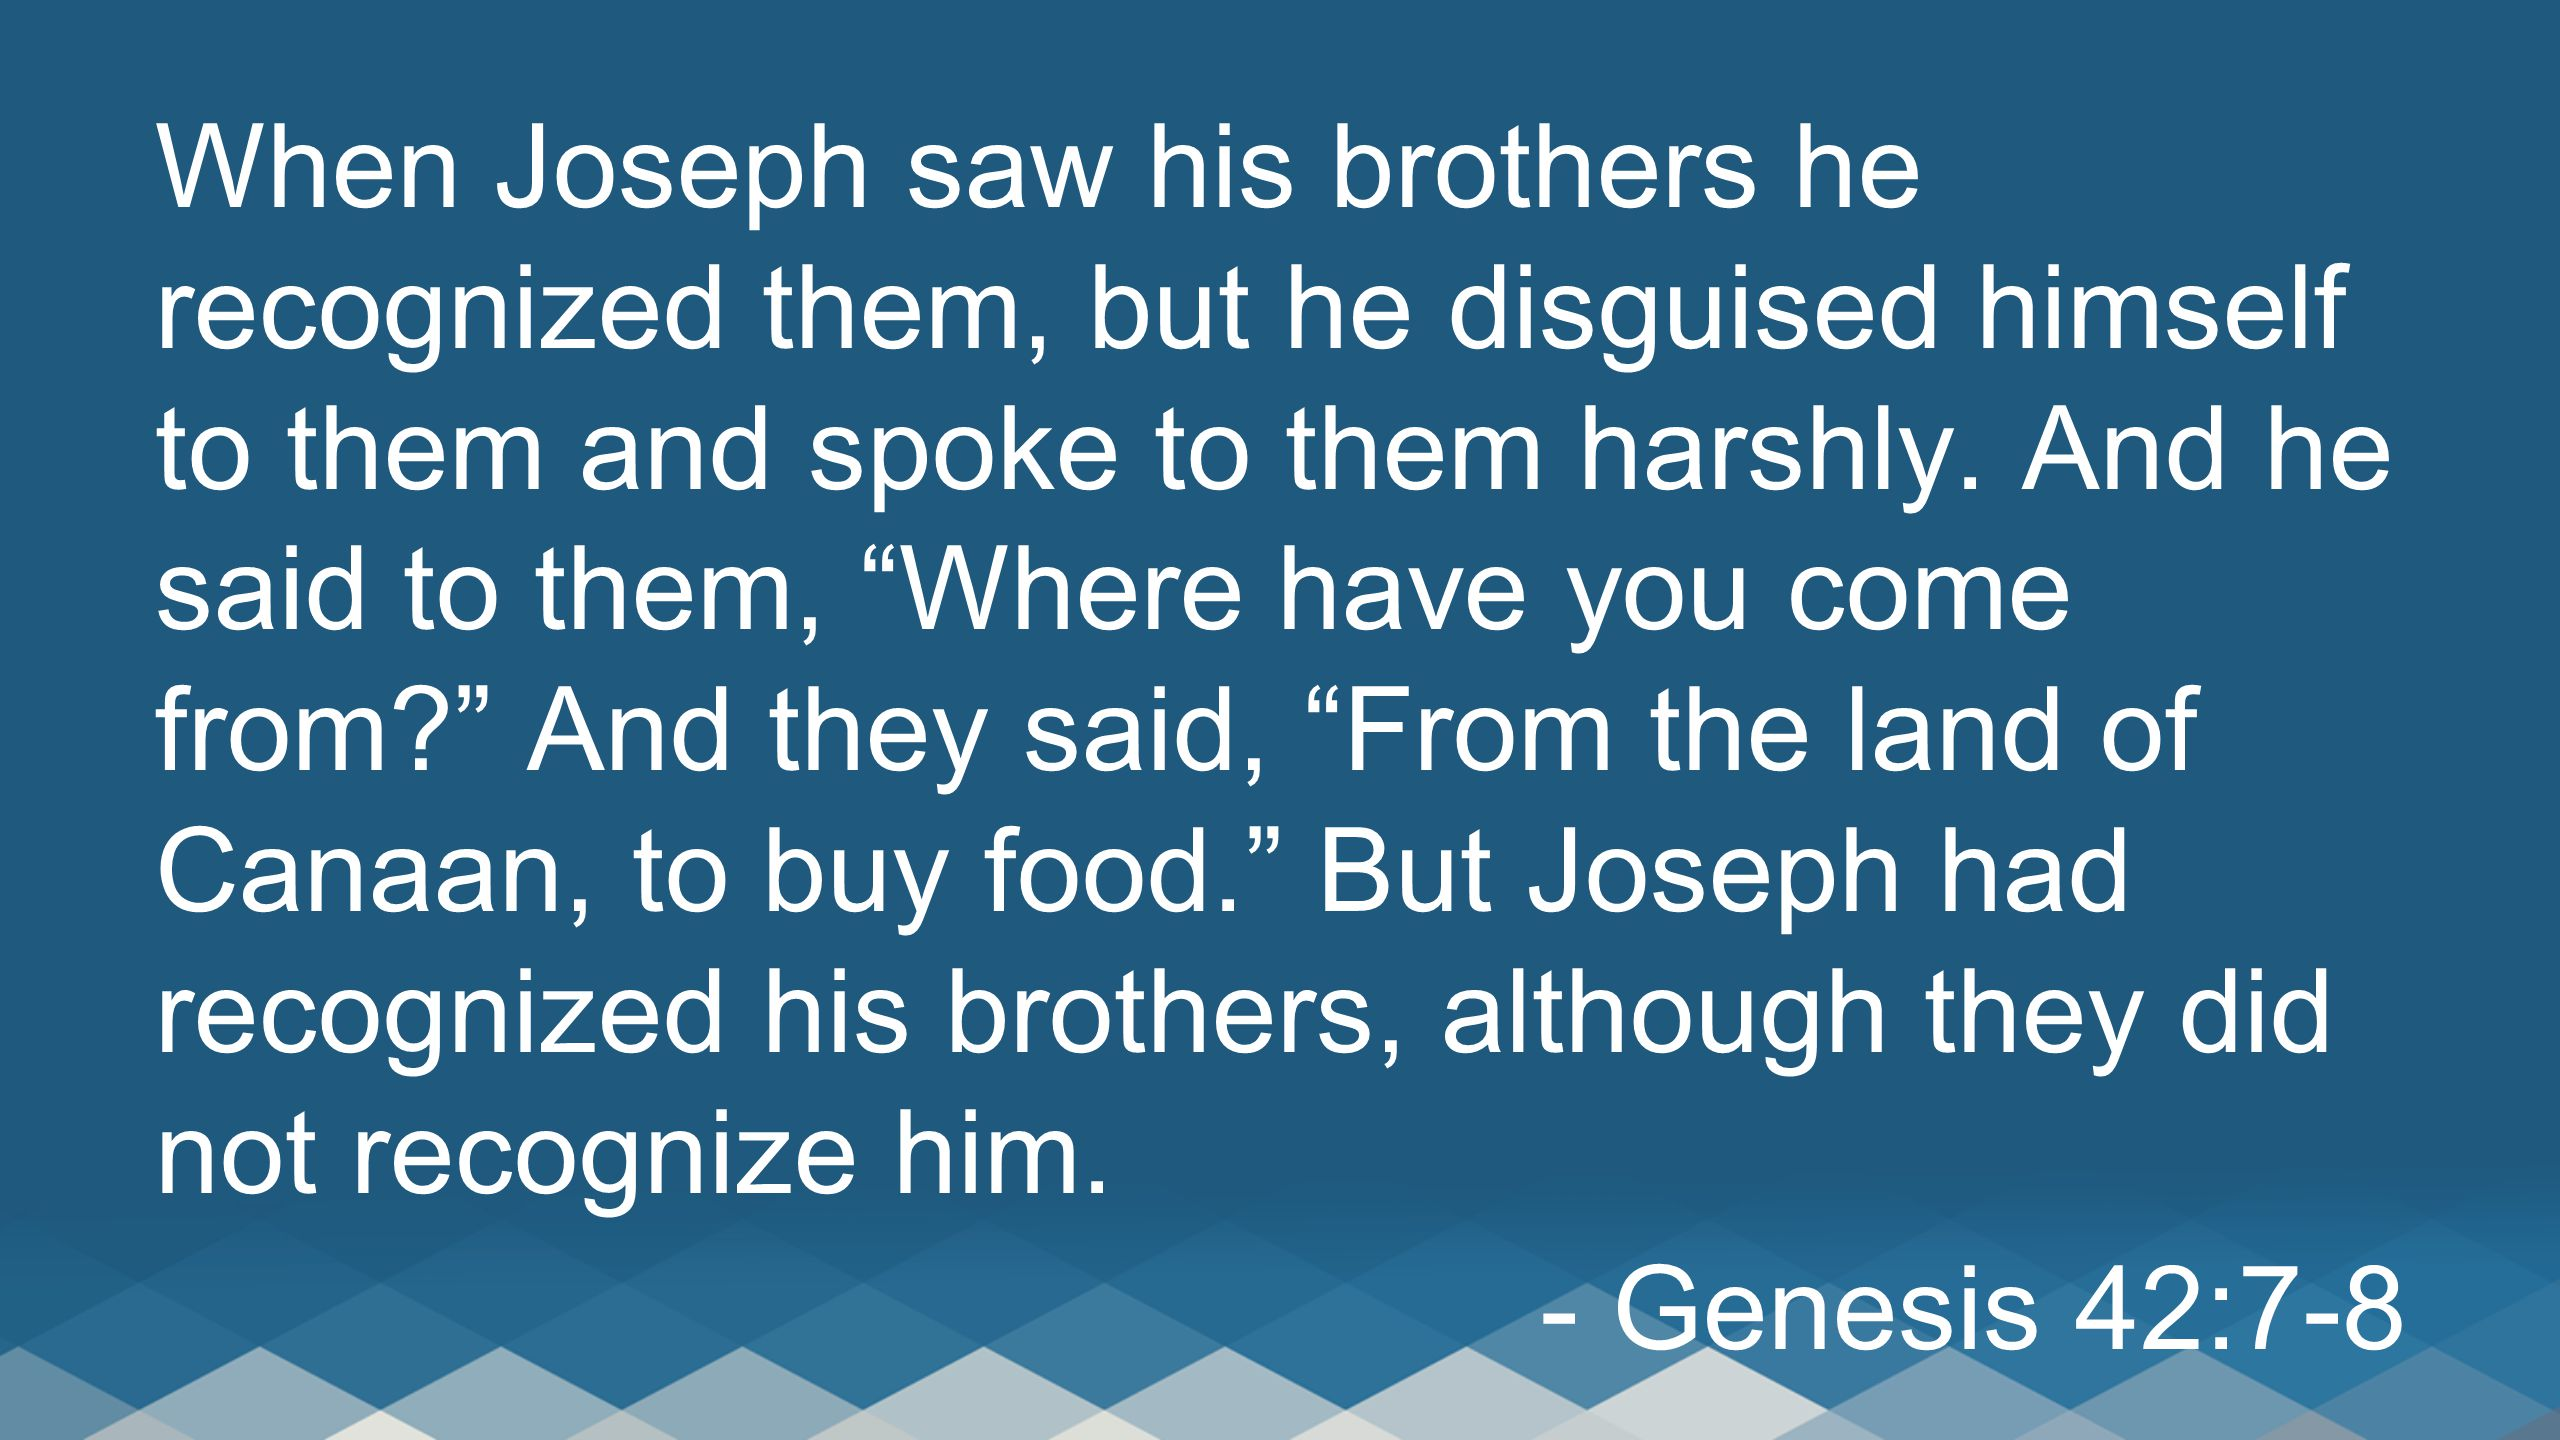 When Joseph saw his brothers he recognized them, but he disguised himself to them and spoke to them harshly. And he said to them, Where have you come from And they said, From the land of Canaan, to buy food. But Joseph had recognized his brothers, although they did not recognize him.